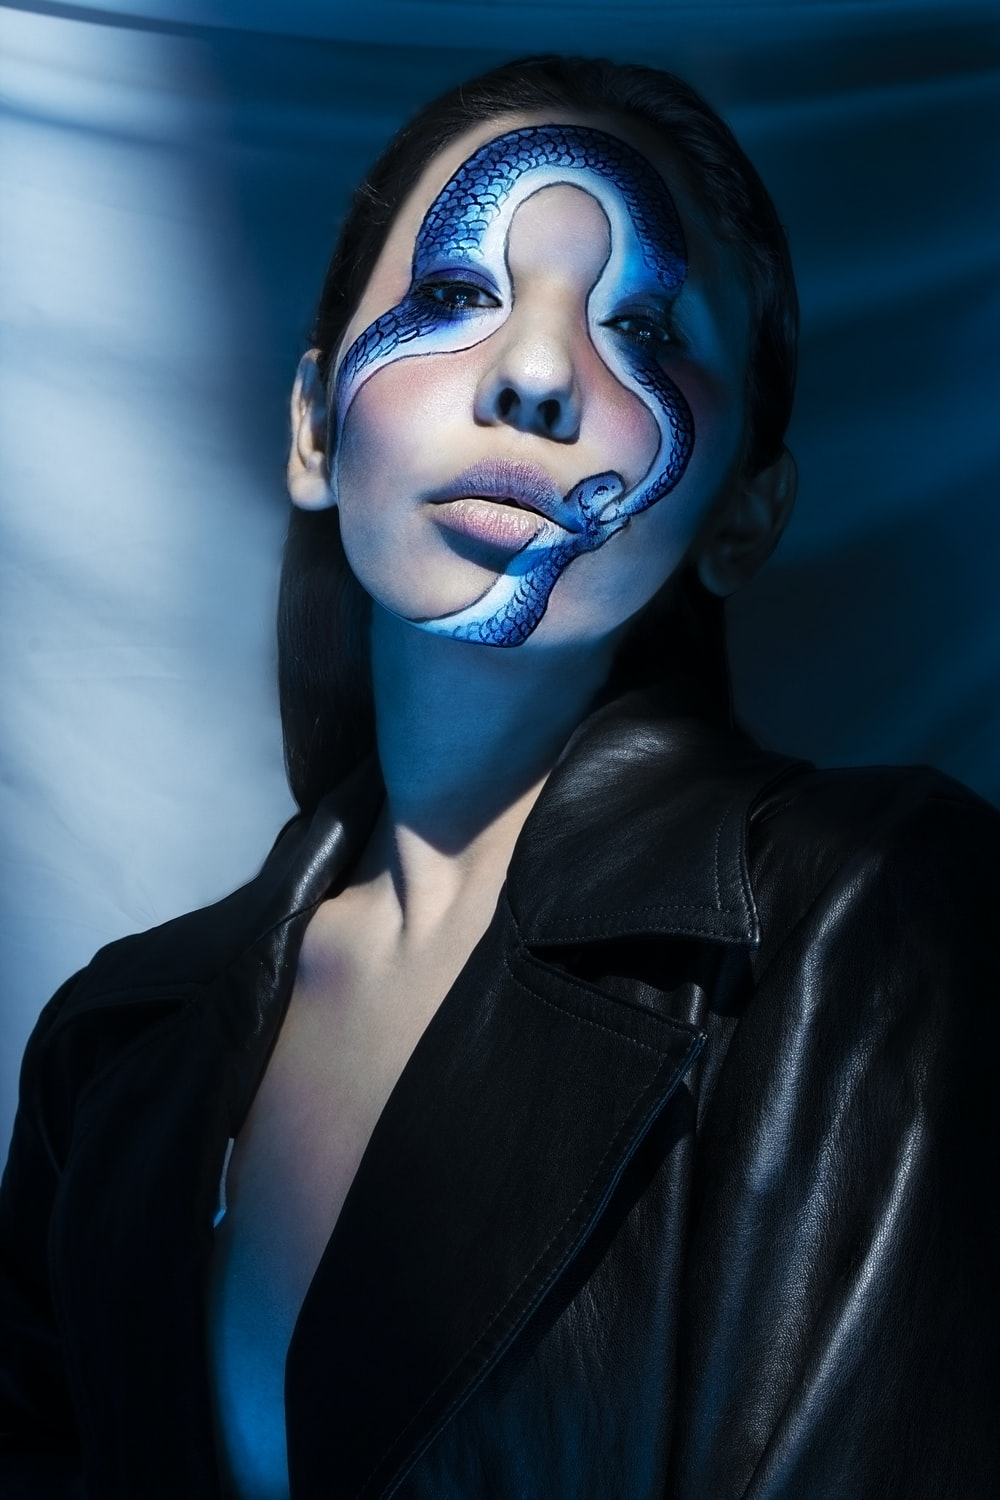 woman in black leather jacket with blue face paint